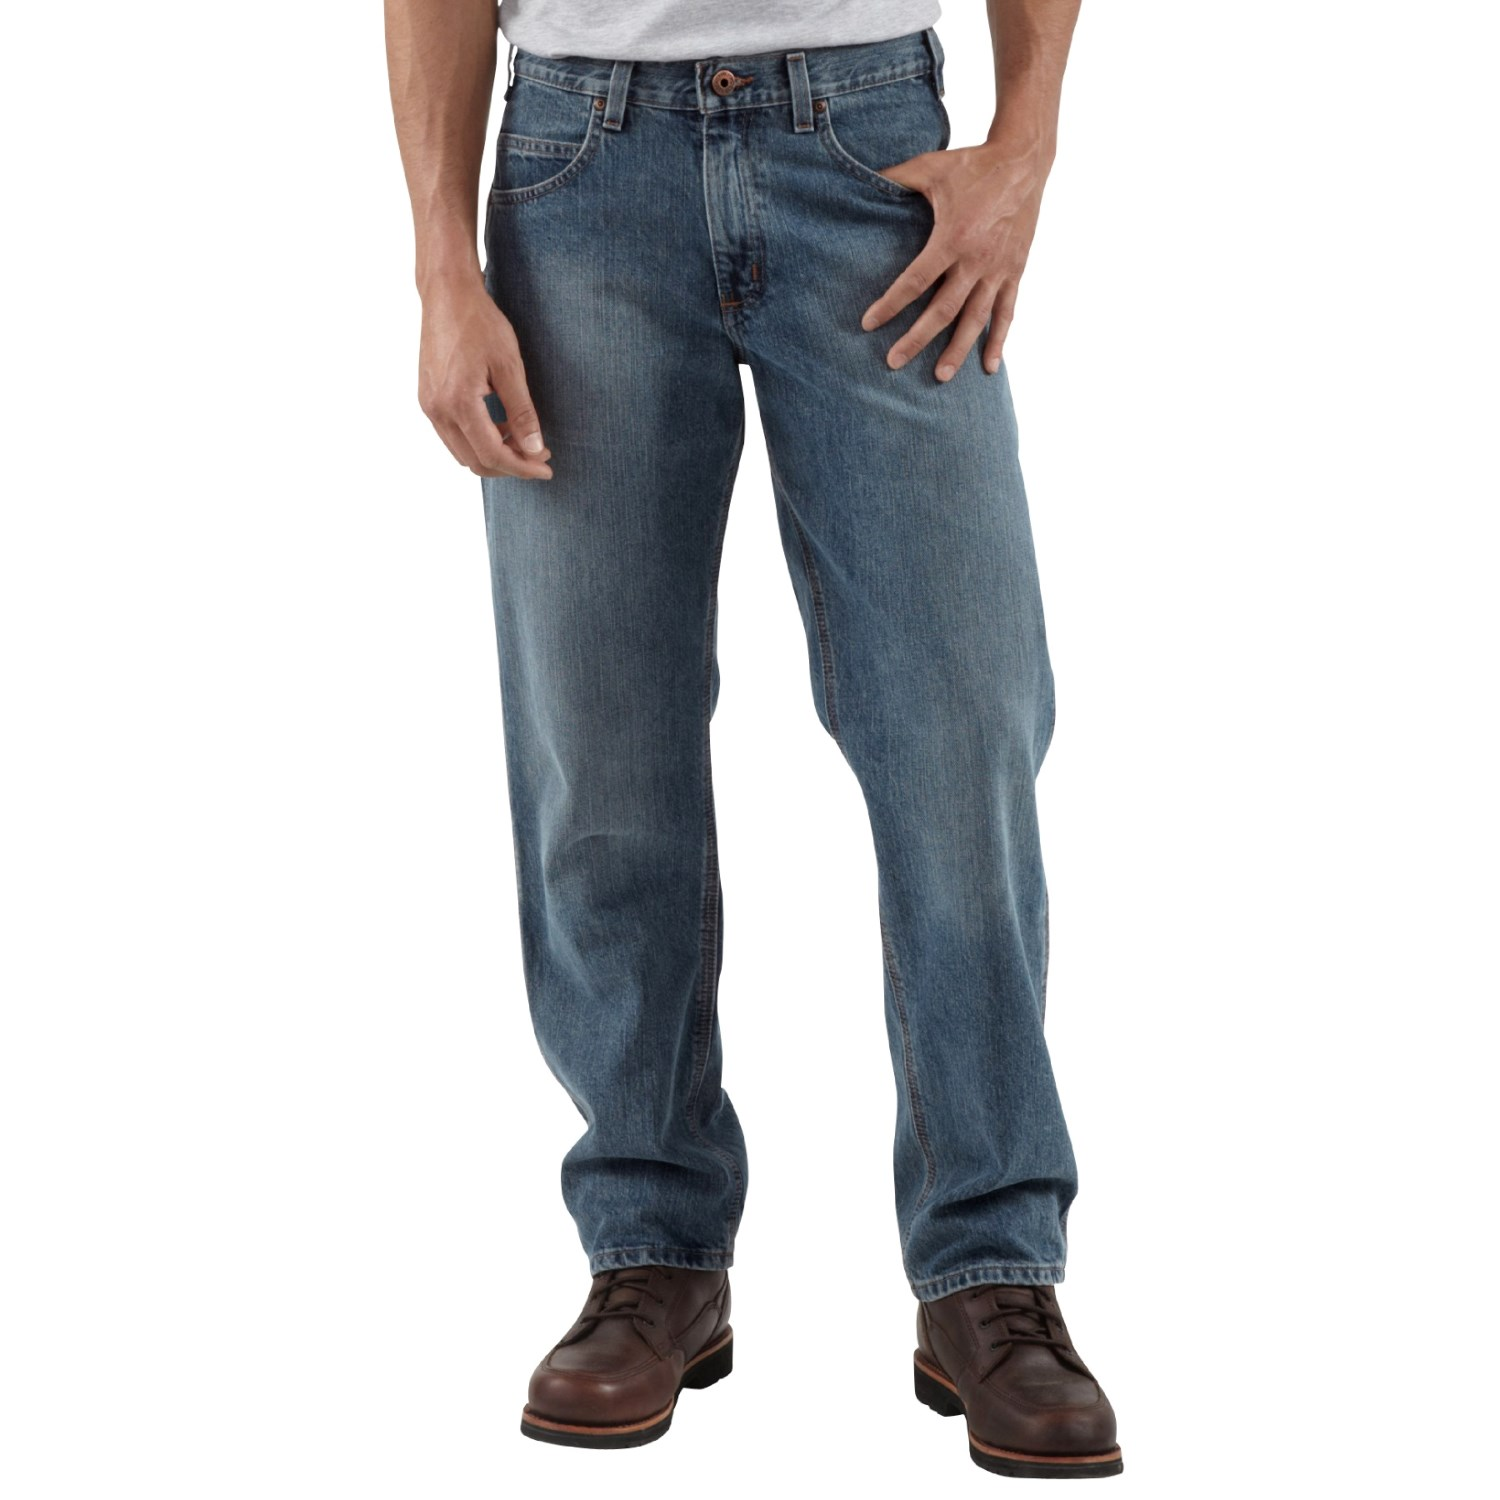 carhartt relaxed fit jeans for men 1216r